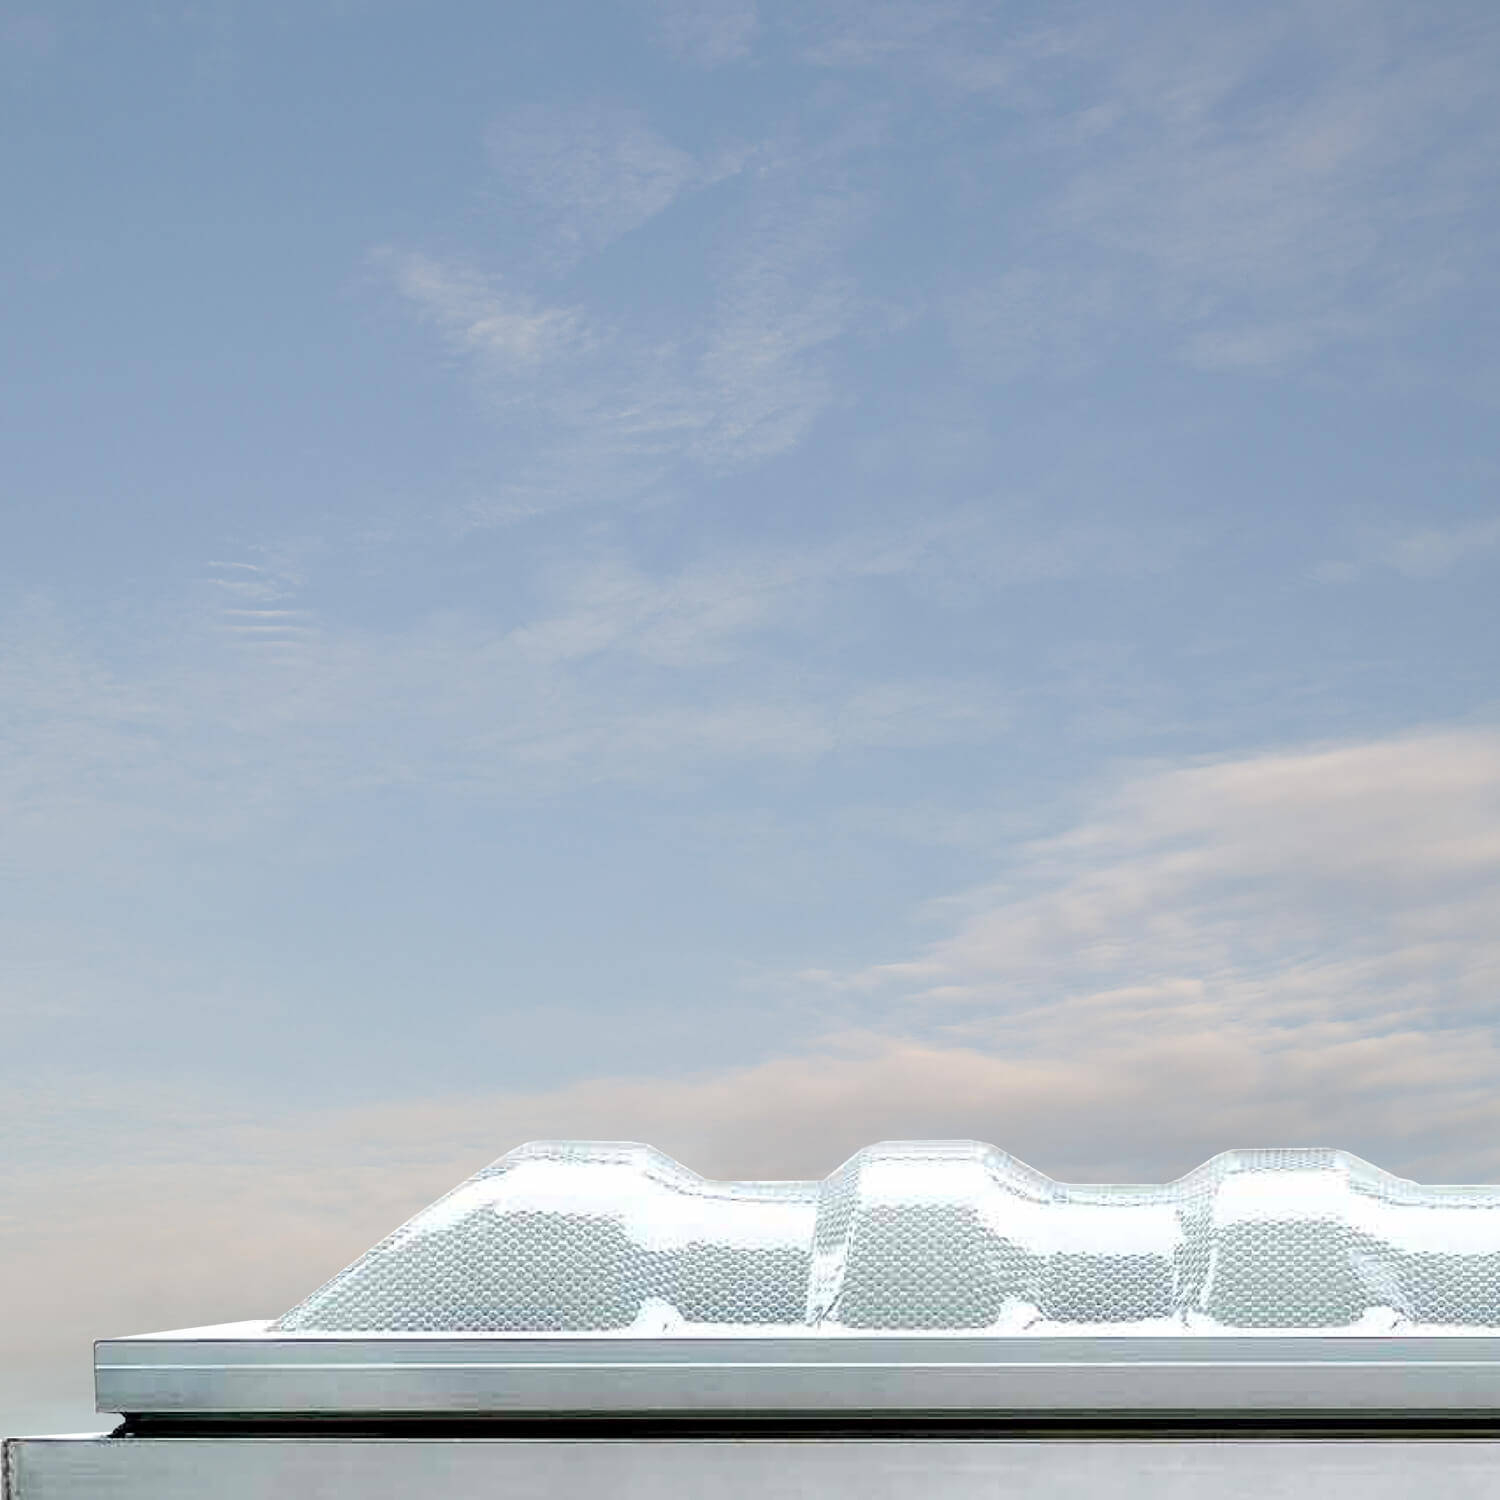 Lucernario En Ingles Natural Lighting Systems And Prismatic Skylights By Lledó Energy